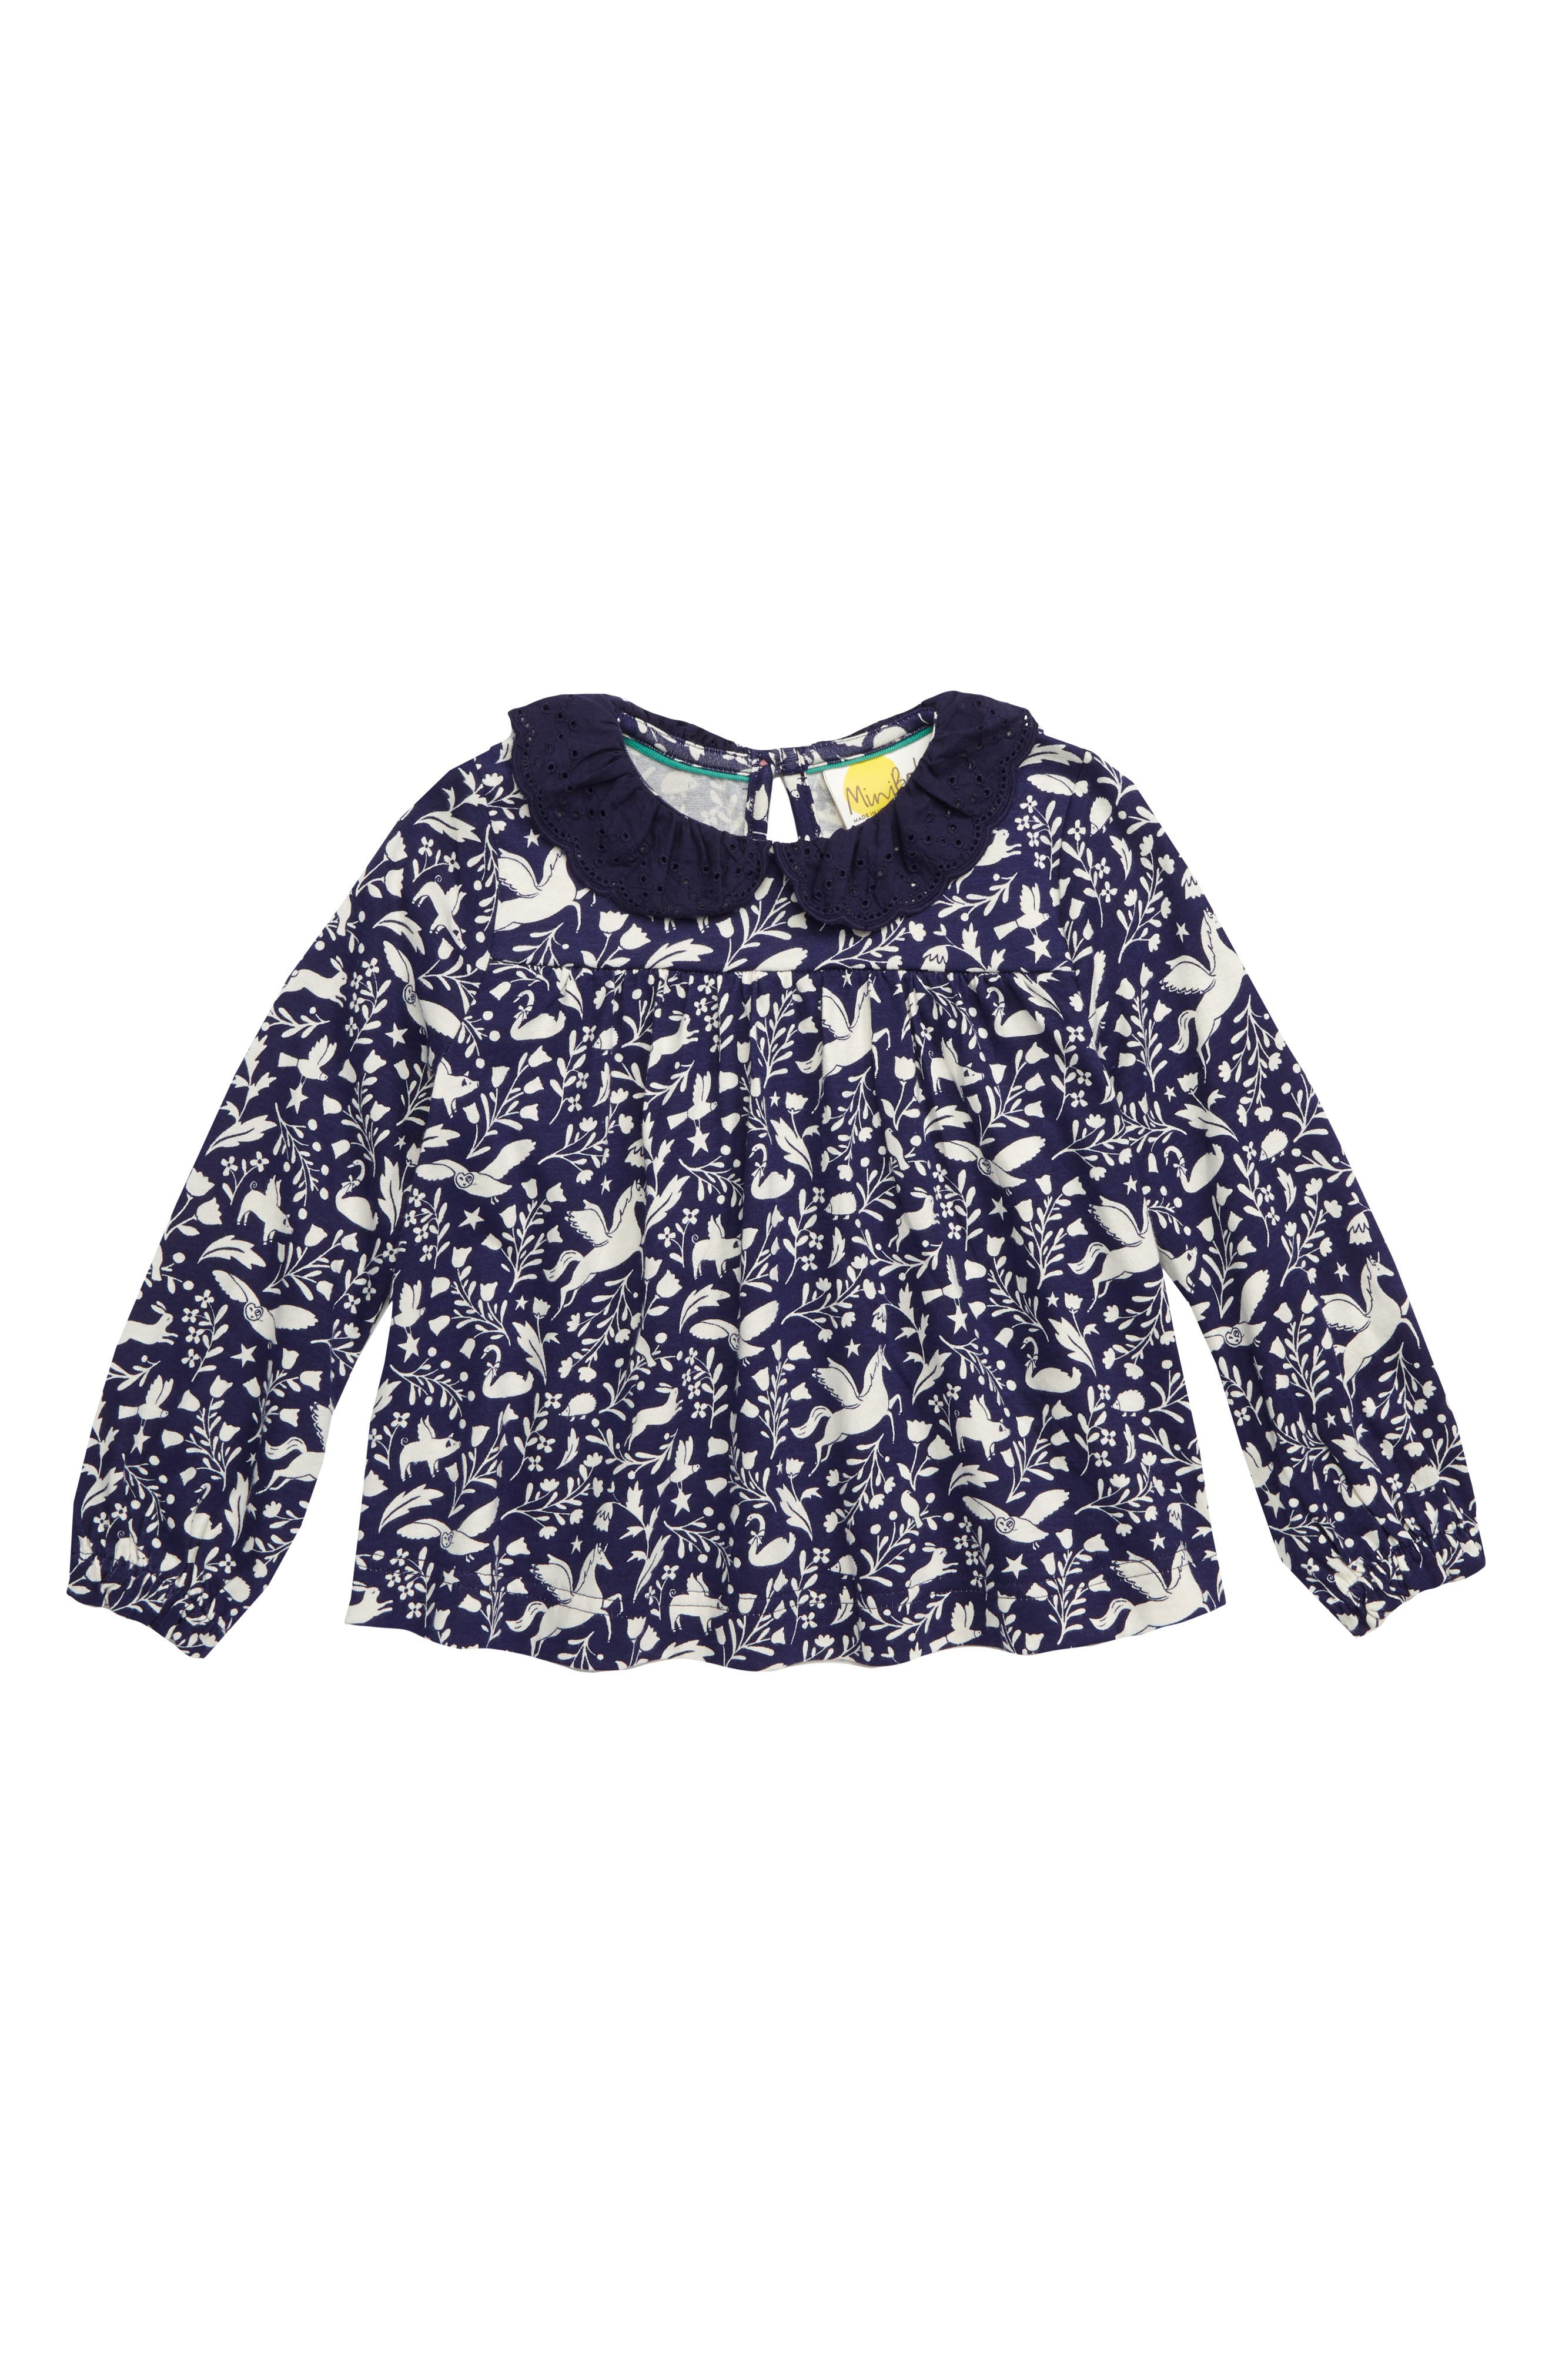 Broderie Collar Top,                             Main thumbnail 1, color,                             414